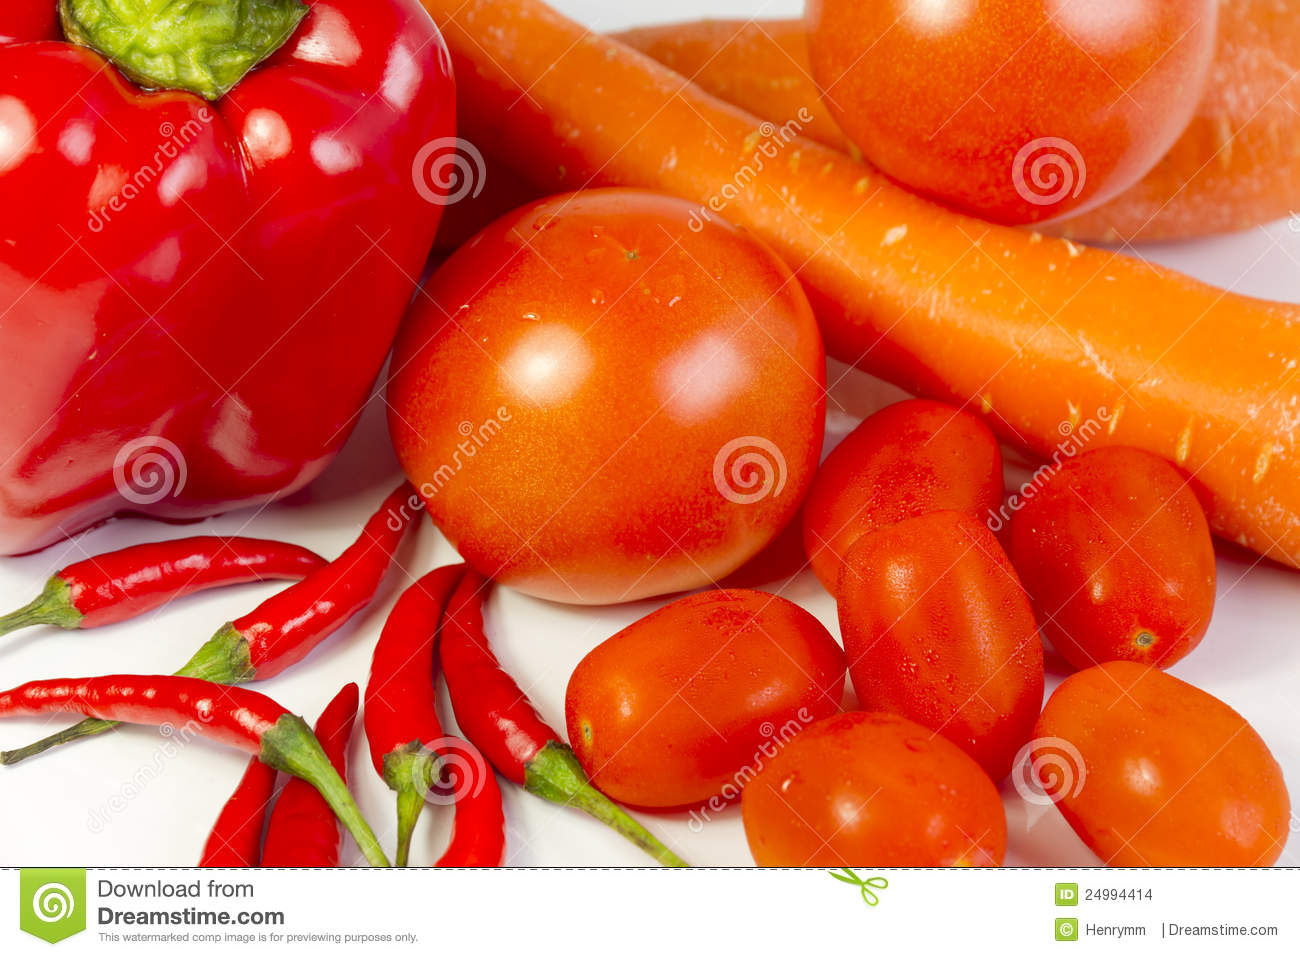 Pepper, carrots, tomatoes, sweet tomatoes and chil